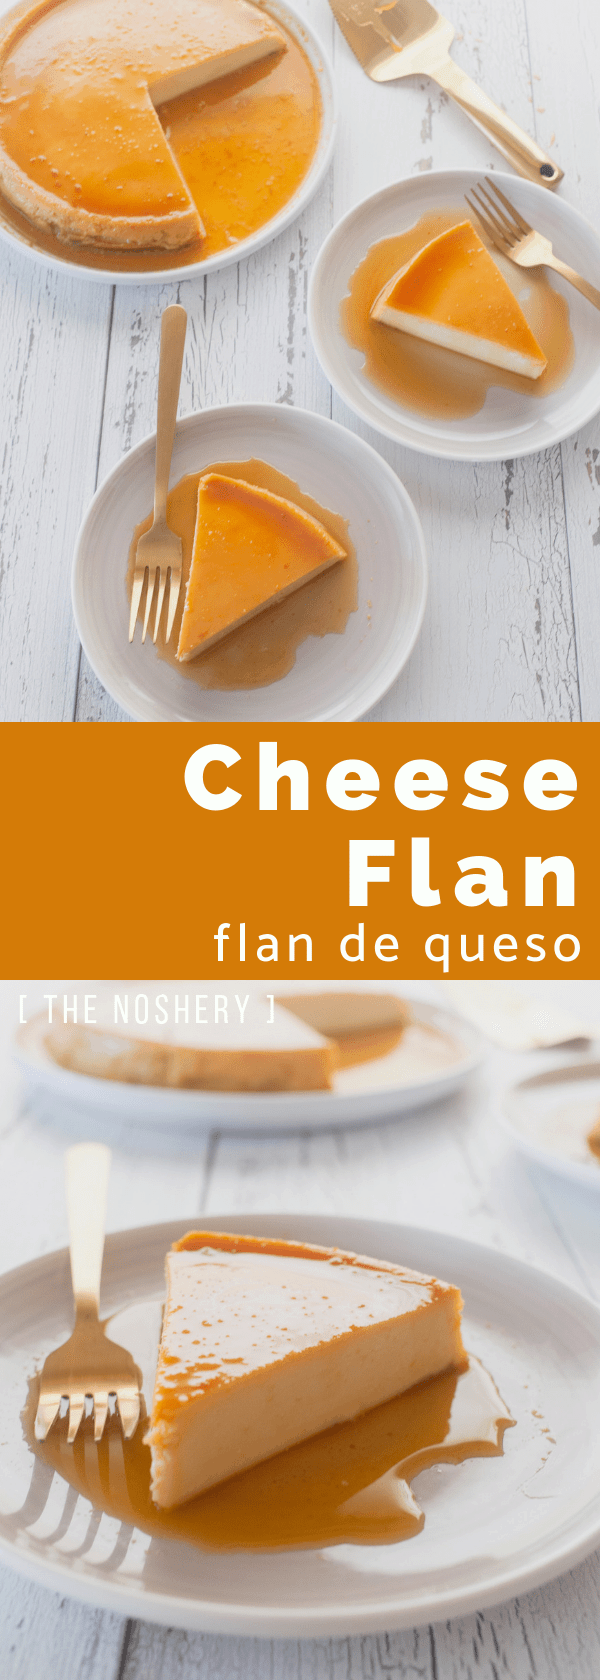 Cheese Flan (Flan de Queso) | Flan is a traditional holiday treat. This cheese flan is the perfect combination of custard and cheesecake. | The Noshery